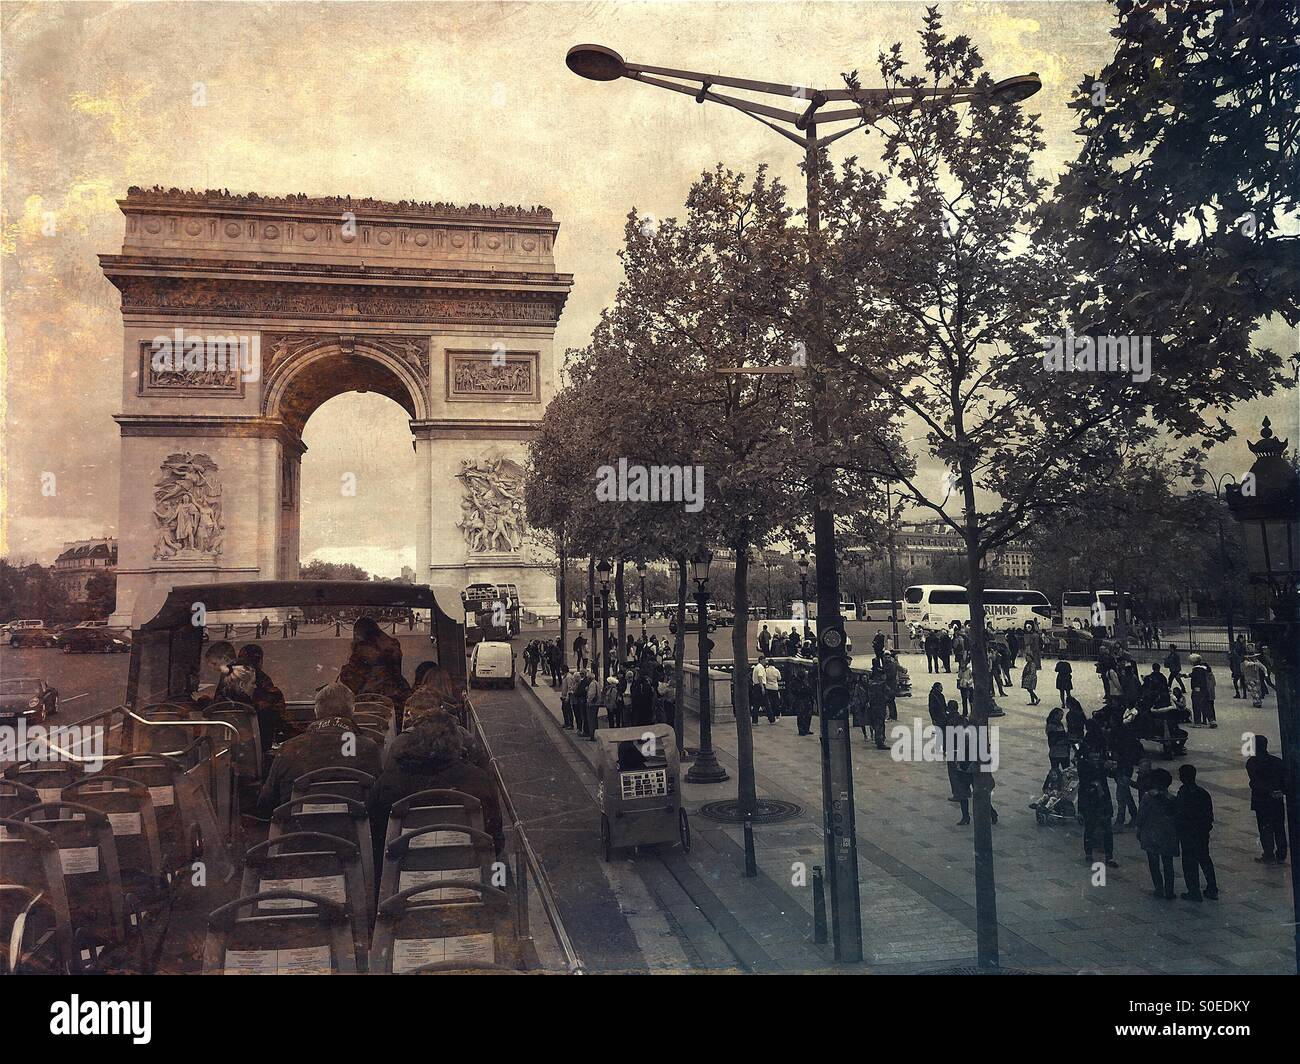 View of Arc de Triomphe from open air sightseeing bus on Avenue de la Grande Armée in centre of Place Charles de Stock Photo